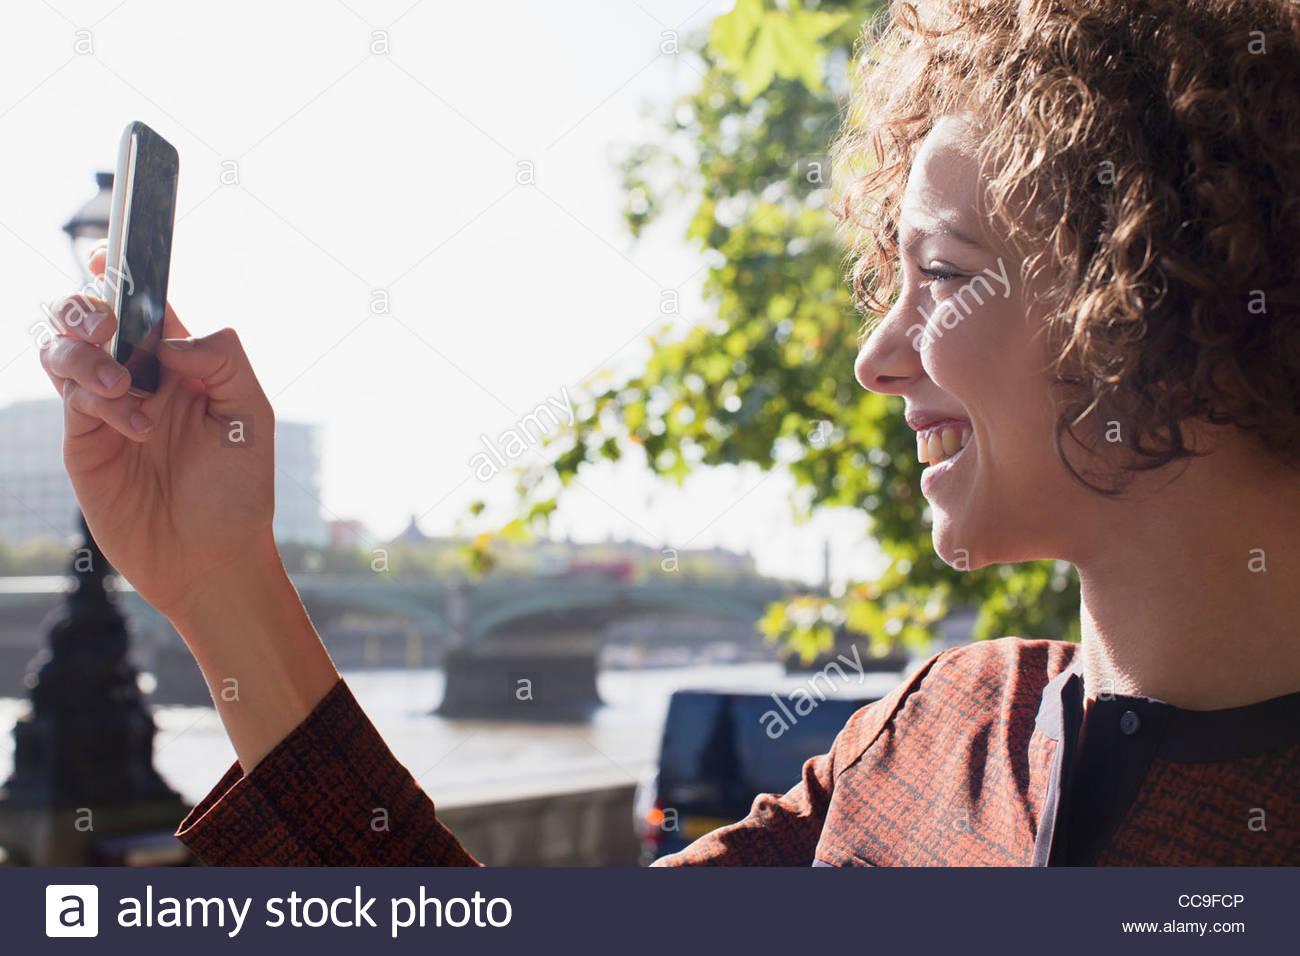 Close up of smiling woman taking photograph with camera phone - Stock Image